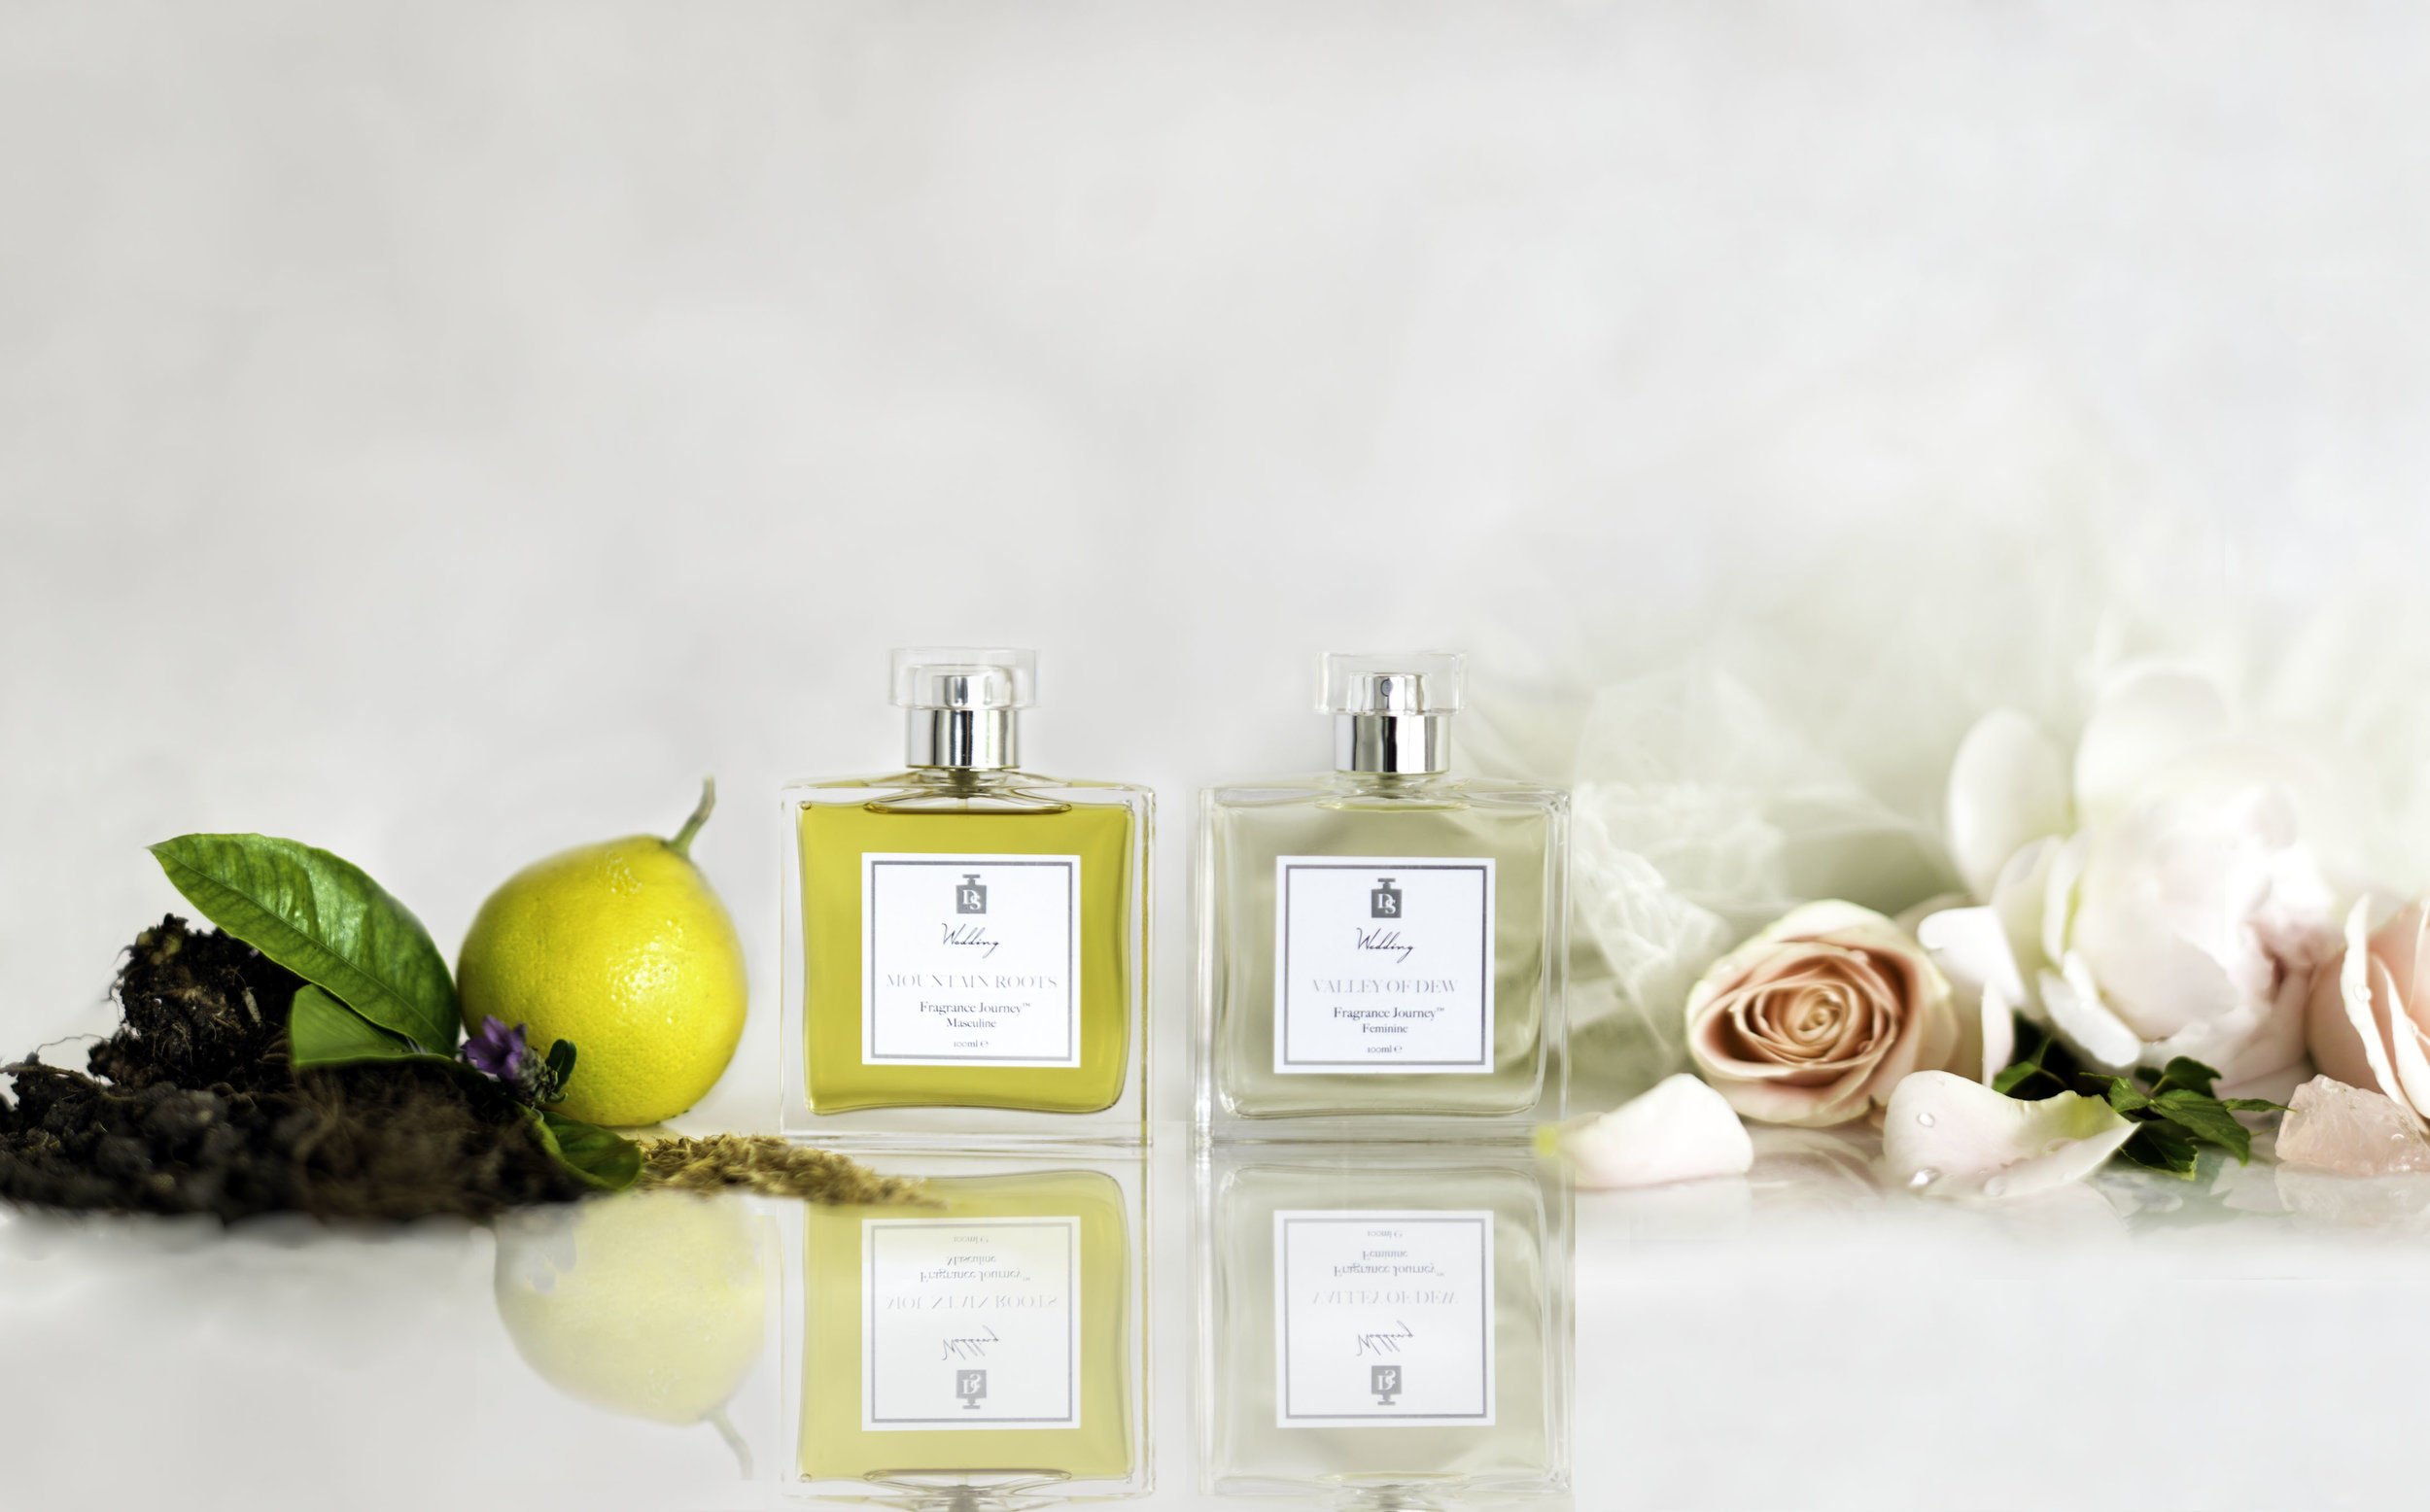 Timeless | Vallery of Dew and Mountain Roots | Design in Scent | Lamare London | Luxury Wedding Planner London